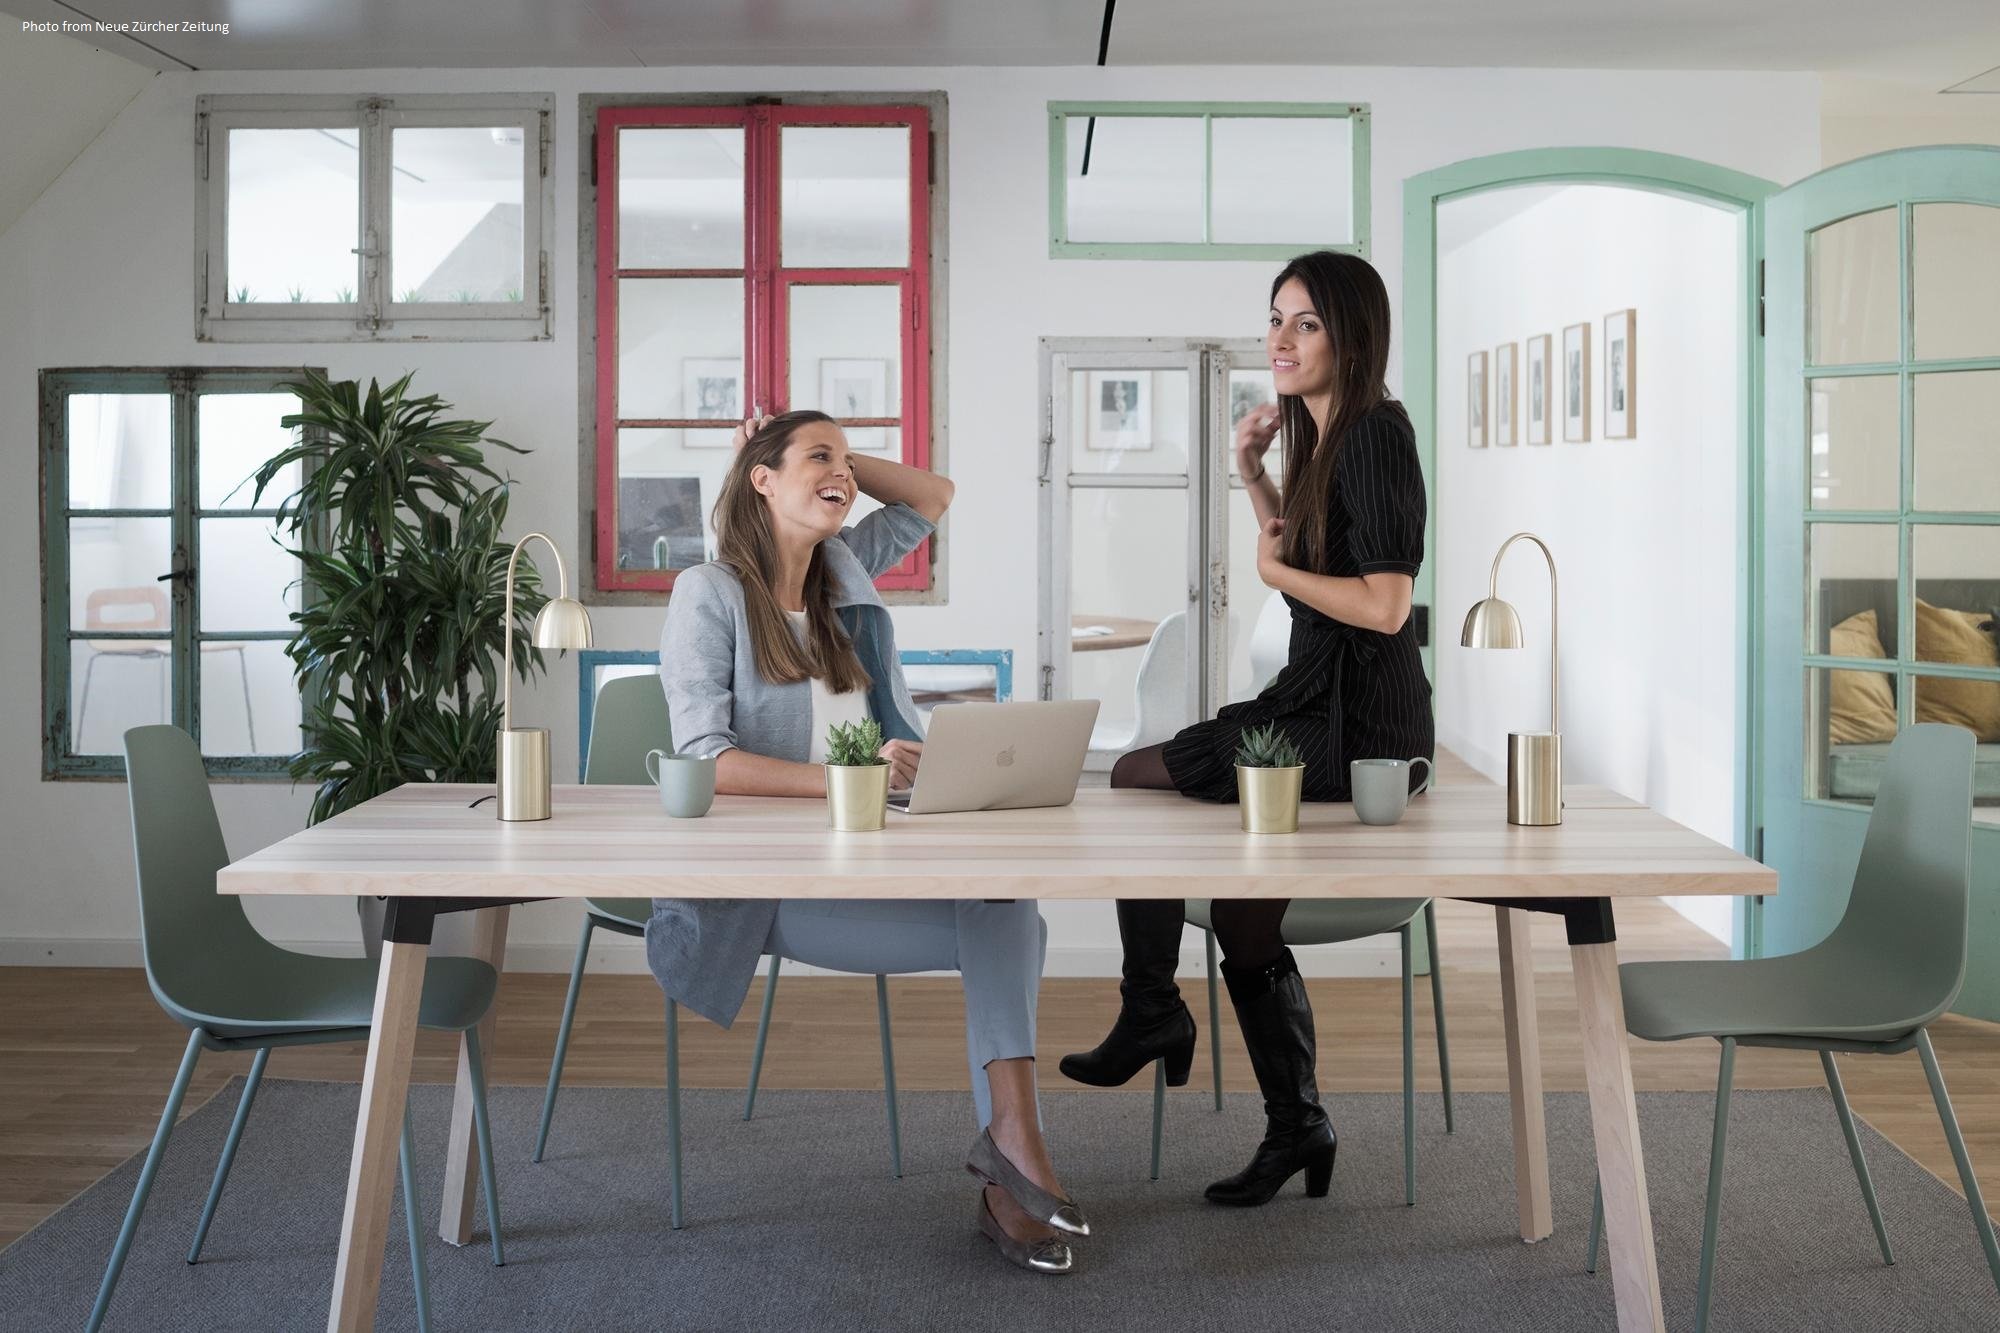 WeSpace the women-centric work hub in Zurich.